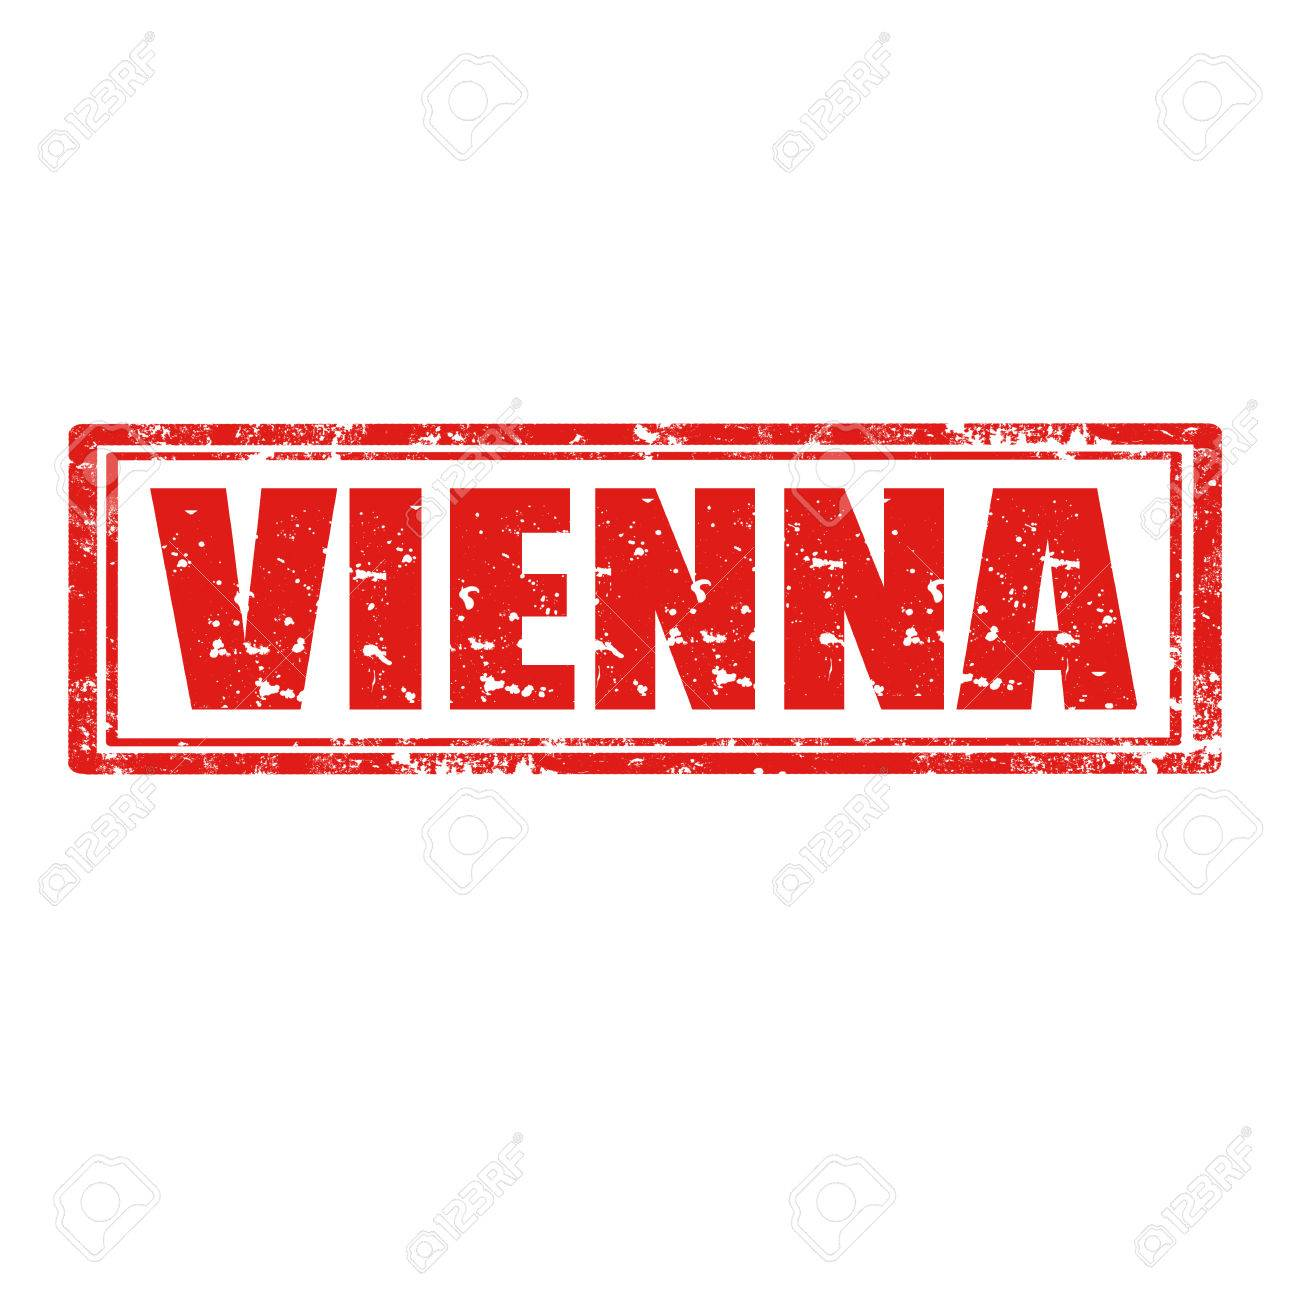 Grunge rubber stamp with word Vienna Stock Vector - 22457371